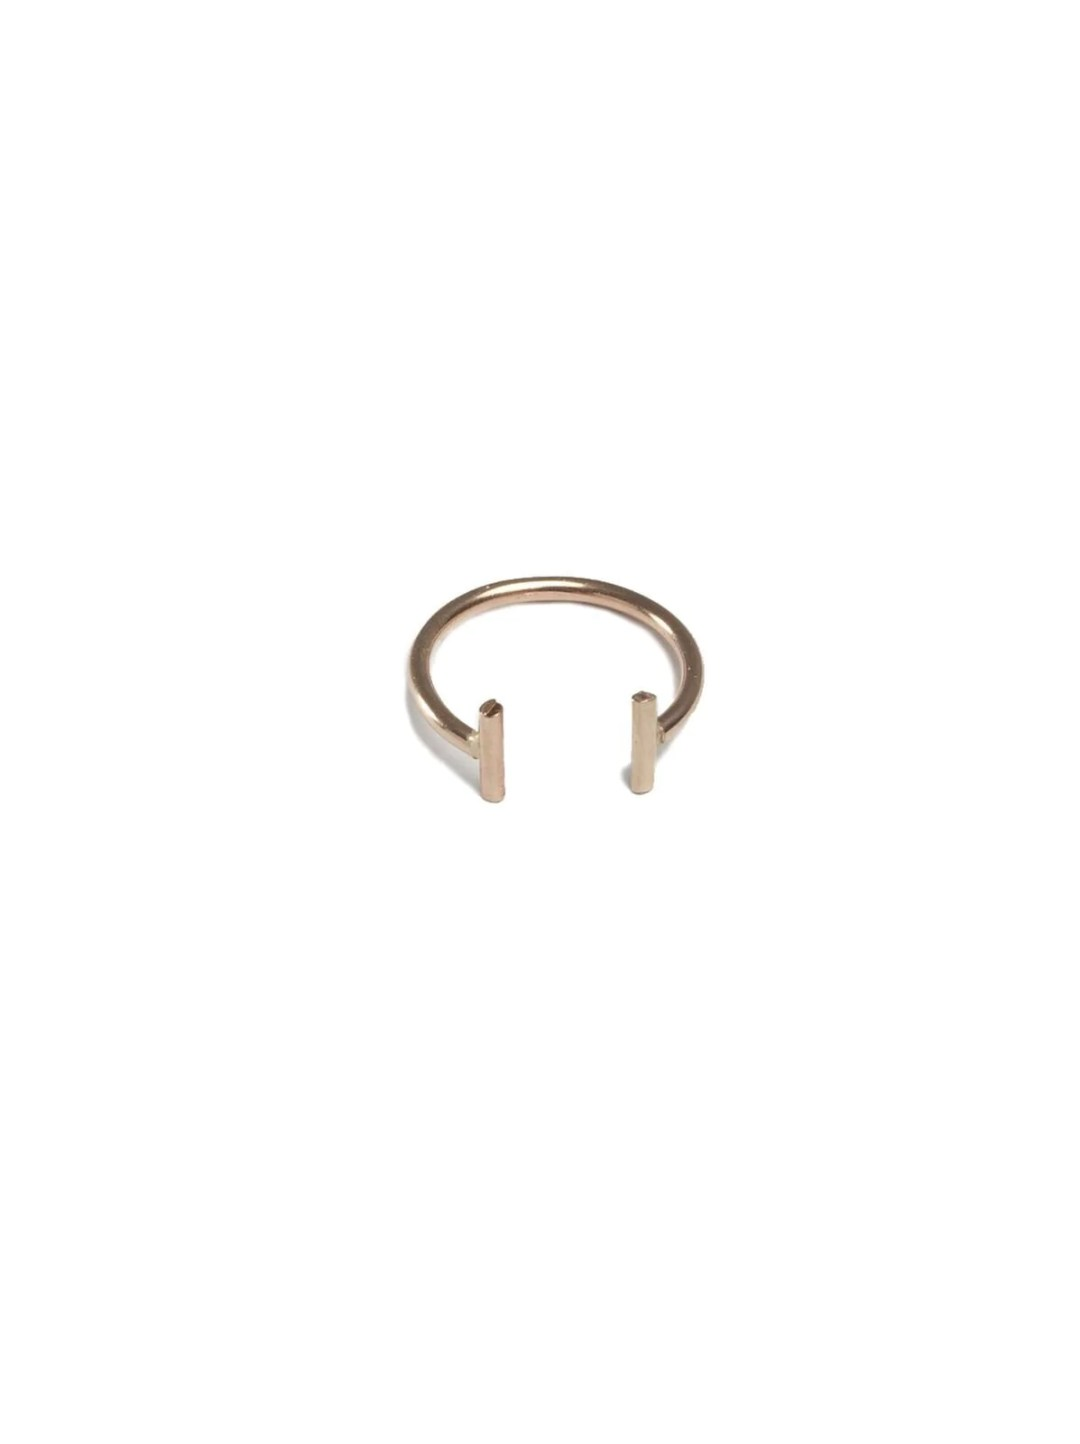 Double Bar Gold Ring from ABLE. 28.00 dollars.